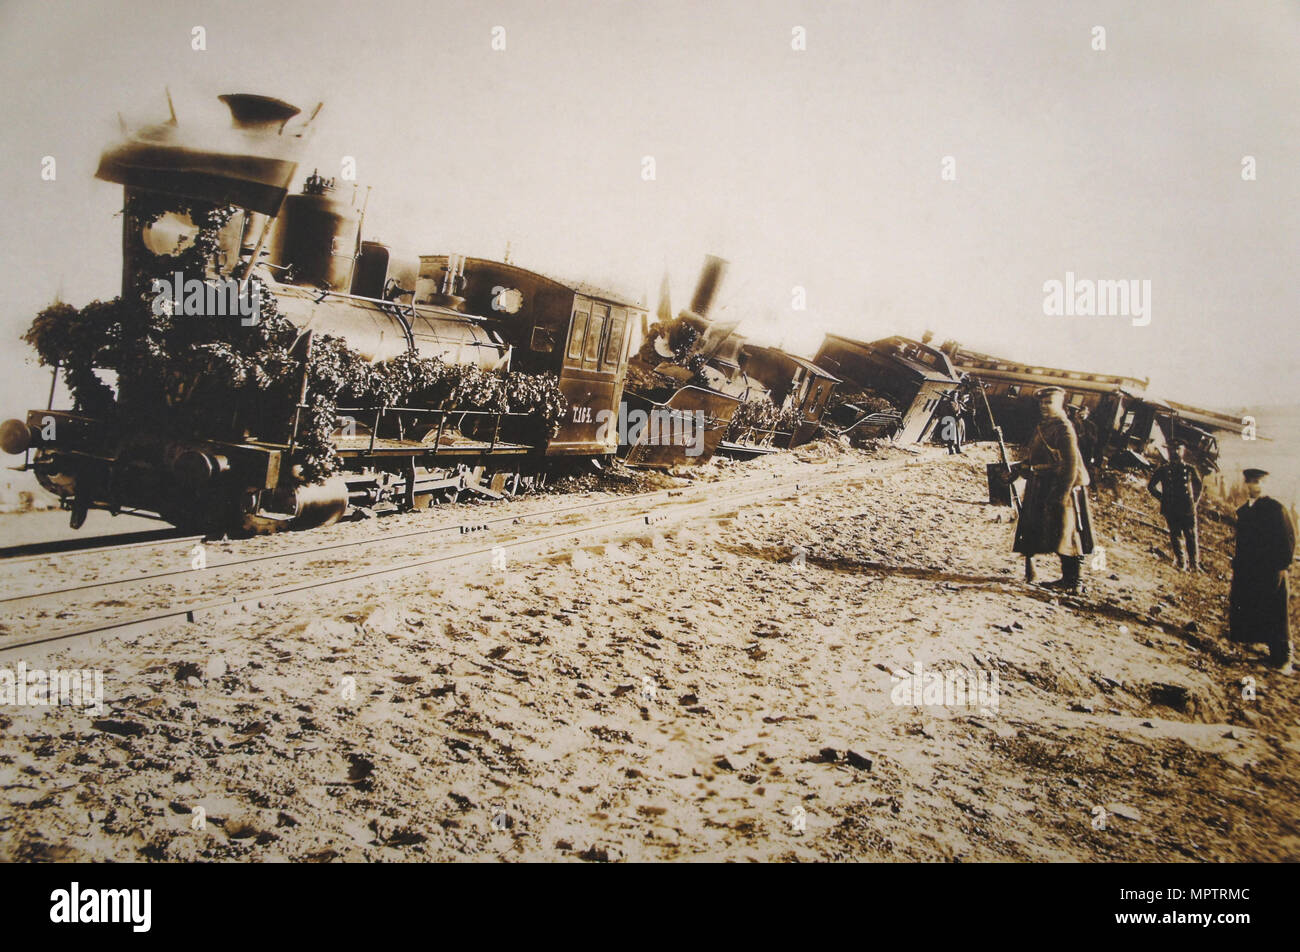 The Borki train disaster on October 29, 1888. - Stock Image